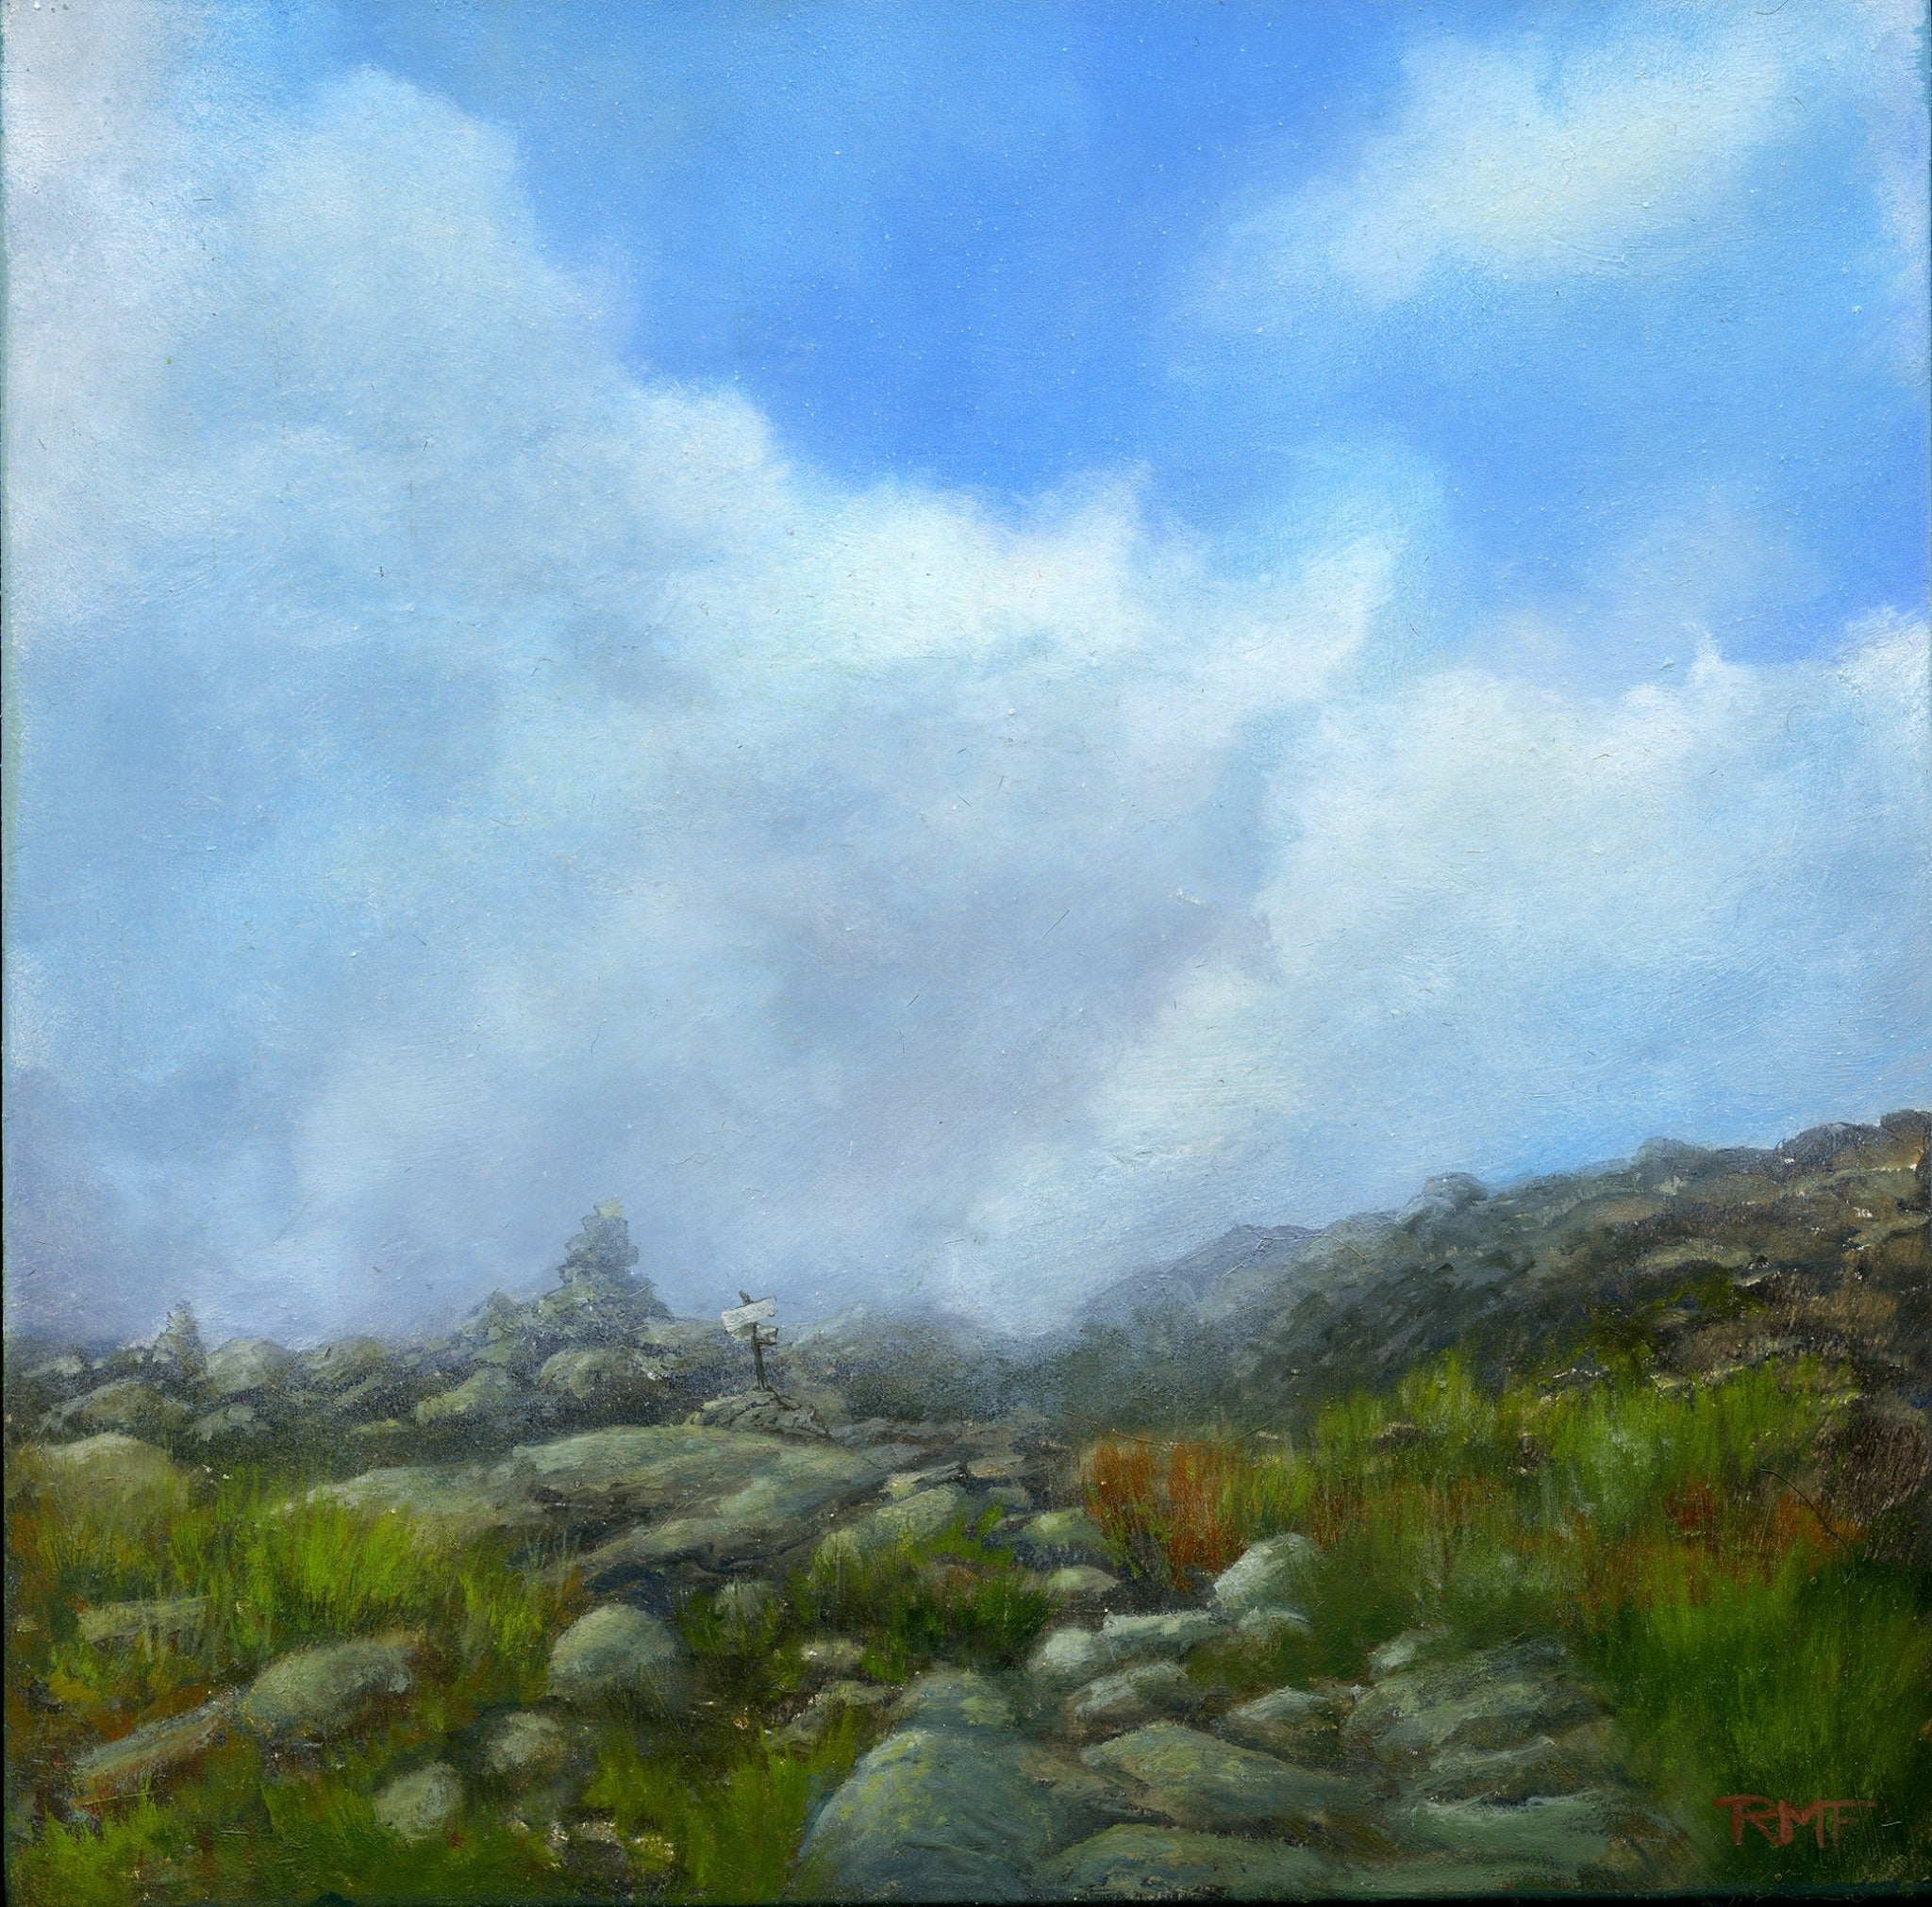 """The Trail Ahead"" is an 8 by 8 inch oil on panel painting by Rebecca M. Fullerton, depicting a rocky mountain trail with a bank of fog on the crest of the hill ahead. A rock cairn and trail sign mark the way as the sun burns off the early morning clouds obscuring the path."